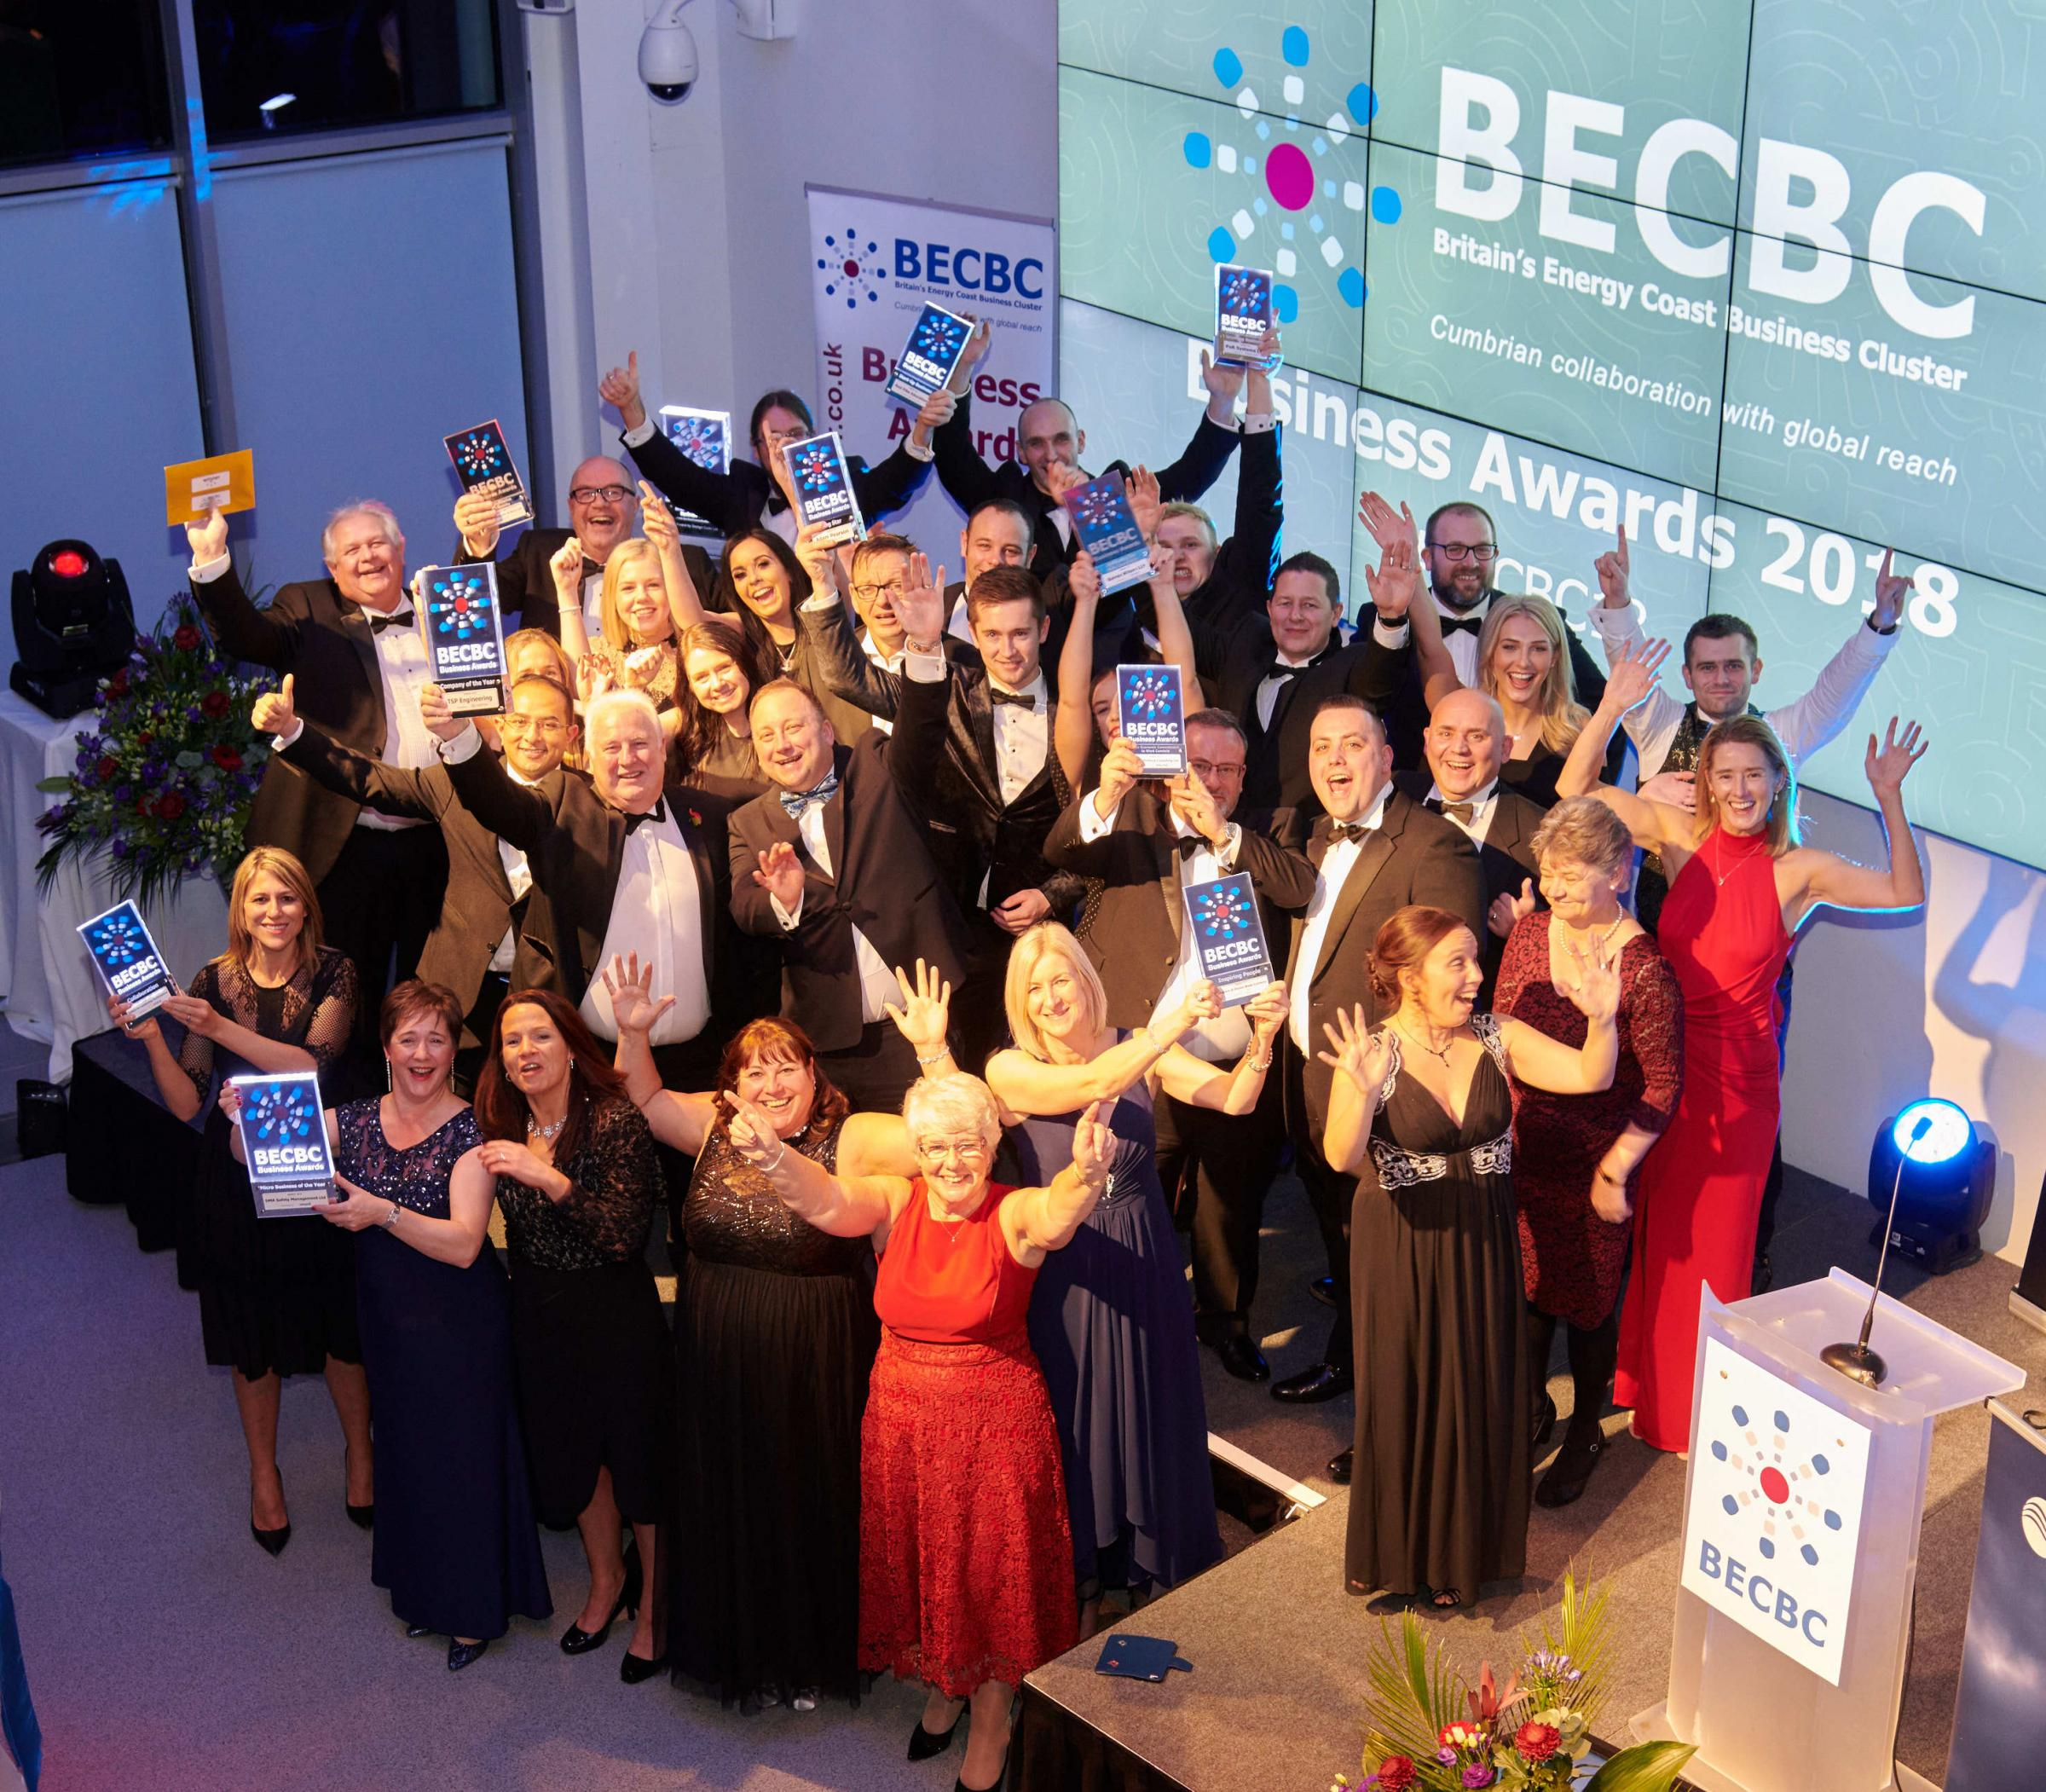 Winners of the 2018 Britain's Energy Coast Business Awards